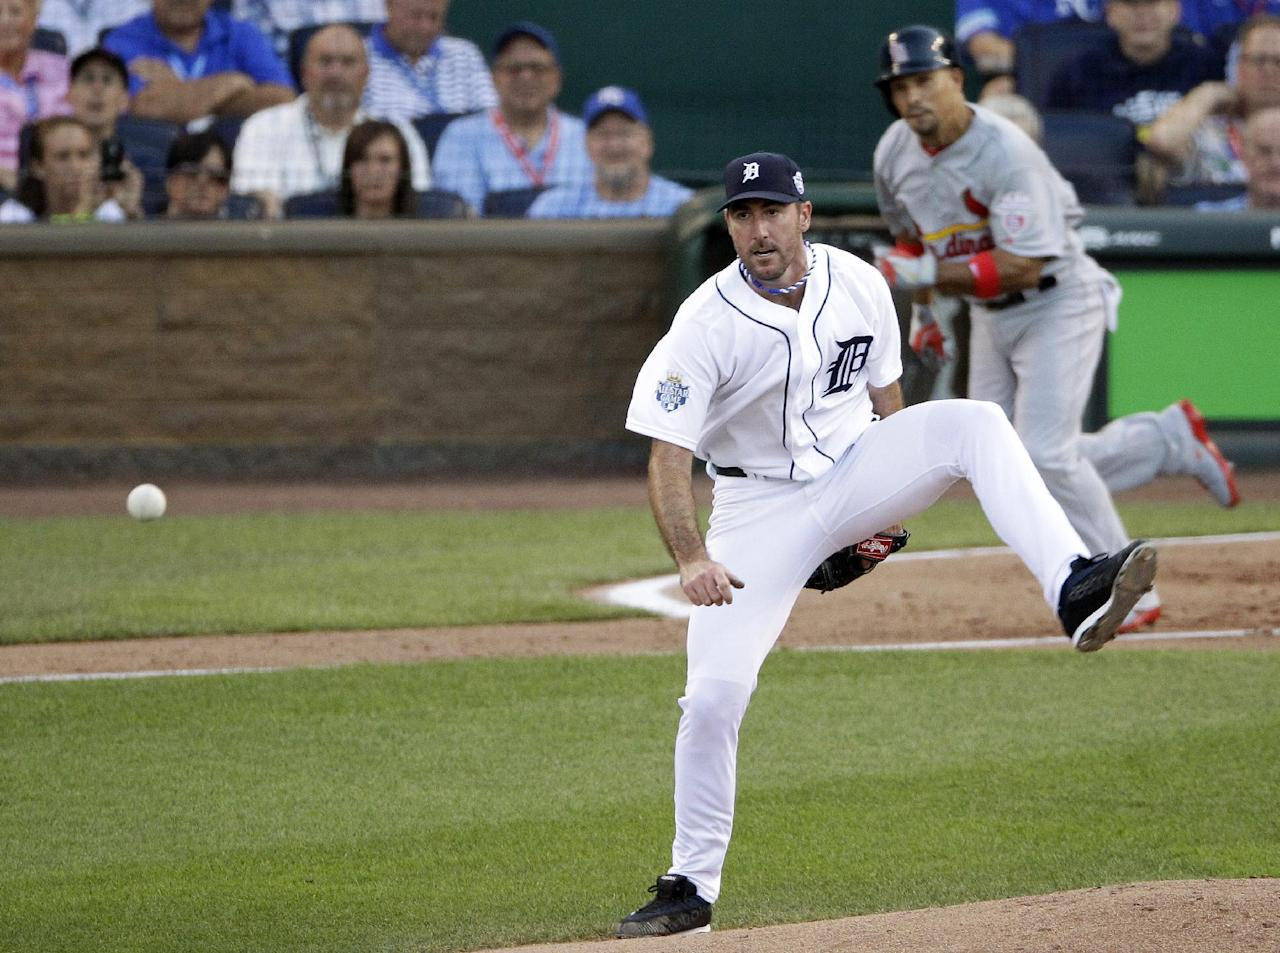 American League's Justin Verlander, of the Detroit Tigers, misses a grounder from National League's Rafael Furcal, of the St. Louis Cardinals, in the first inning of the MLB All-Star baseball game, Tuesday, July 10, 2012, in Kansas City, Mo. Furcal hit into a force out to end the inning. (AP Photo/Charlie Neibergall)